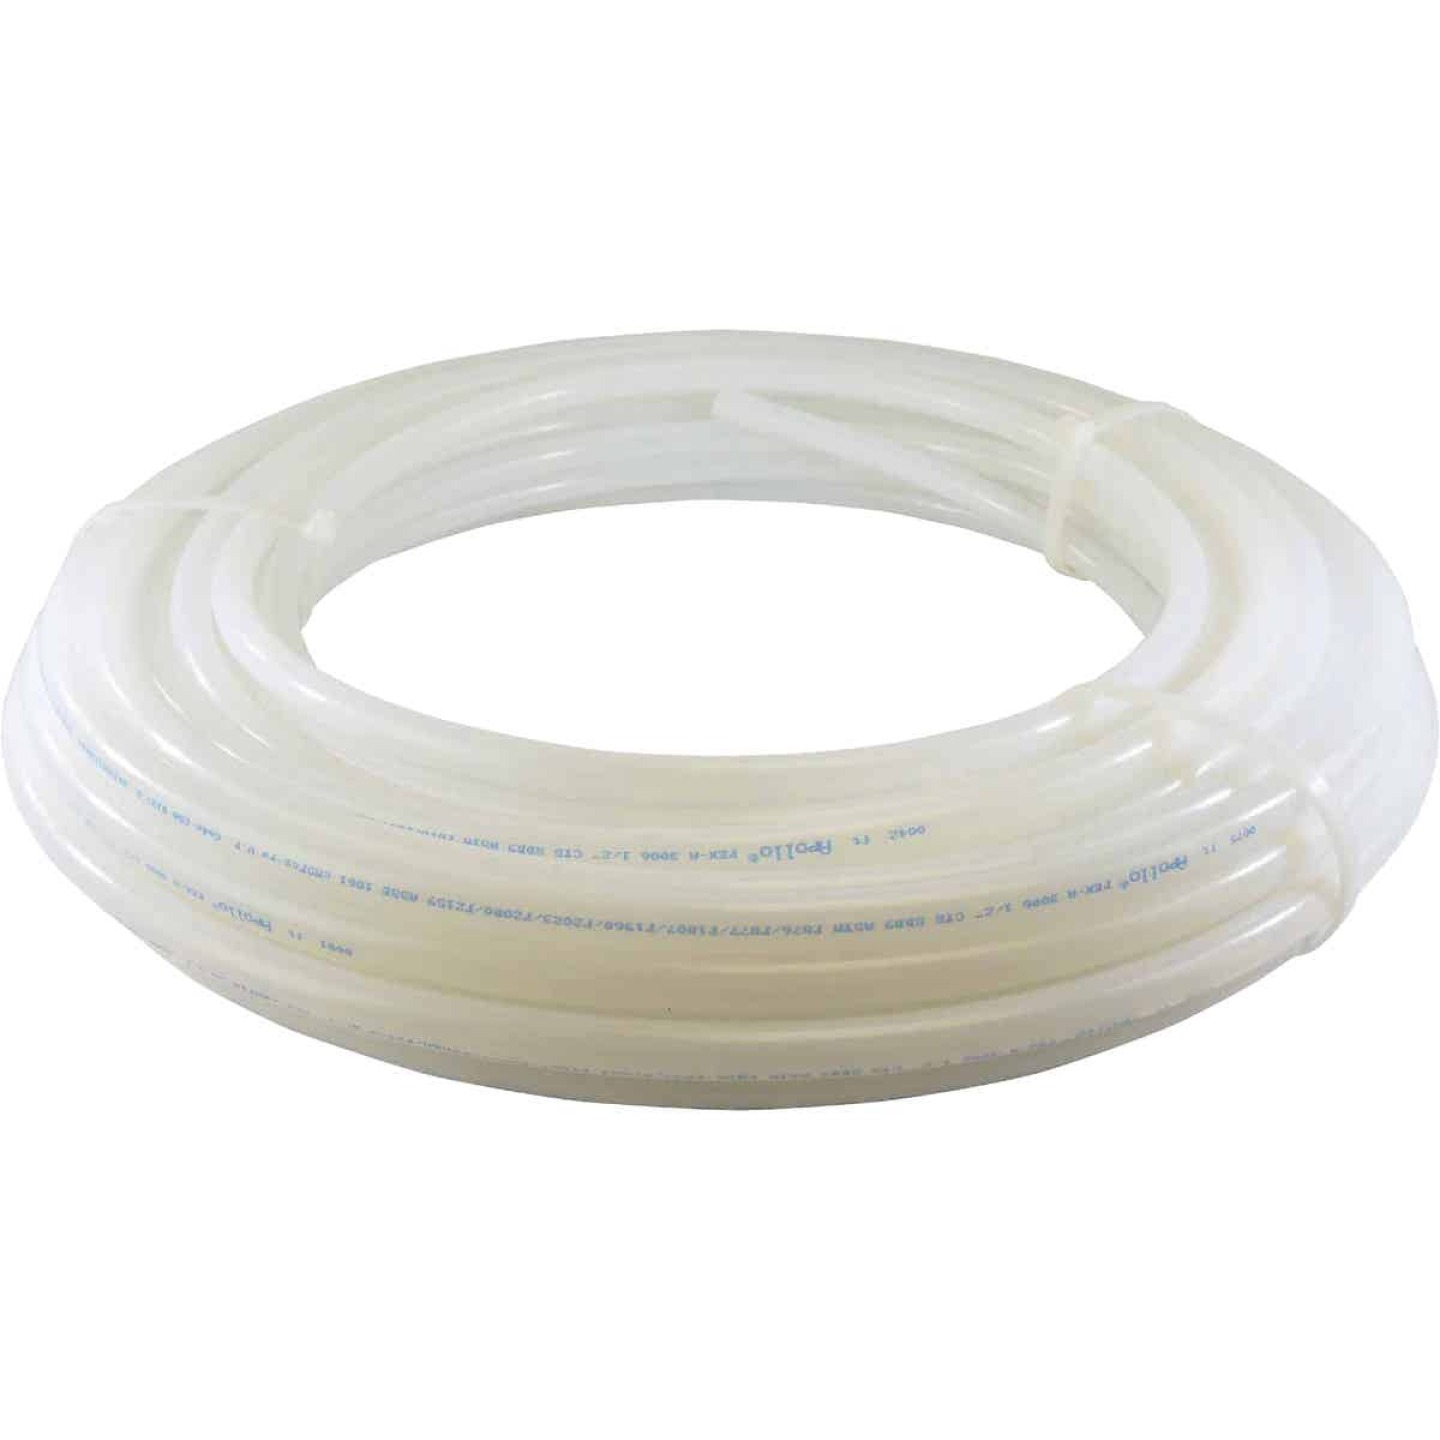 Conbraco 1/2 In. x 100 Ft. Blue PEX Pipe Type A Coil Image 2